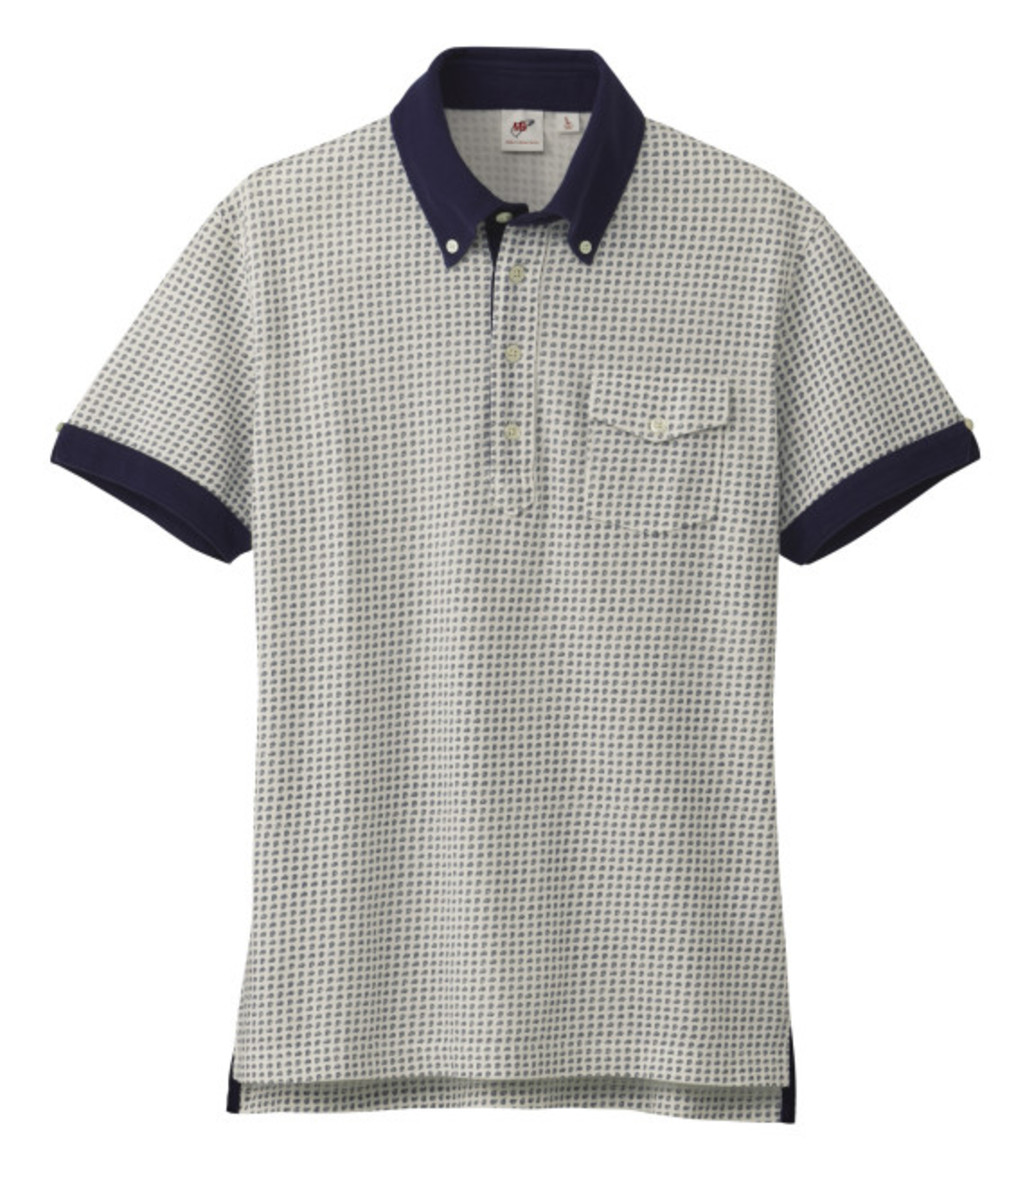 michael-bastian-x-uniqlo-mens-polo-shirt-collection-2013-48